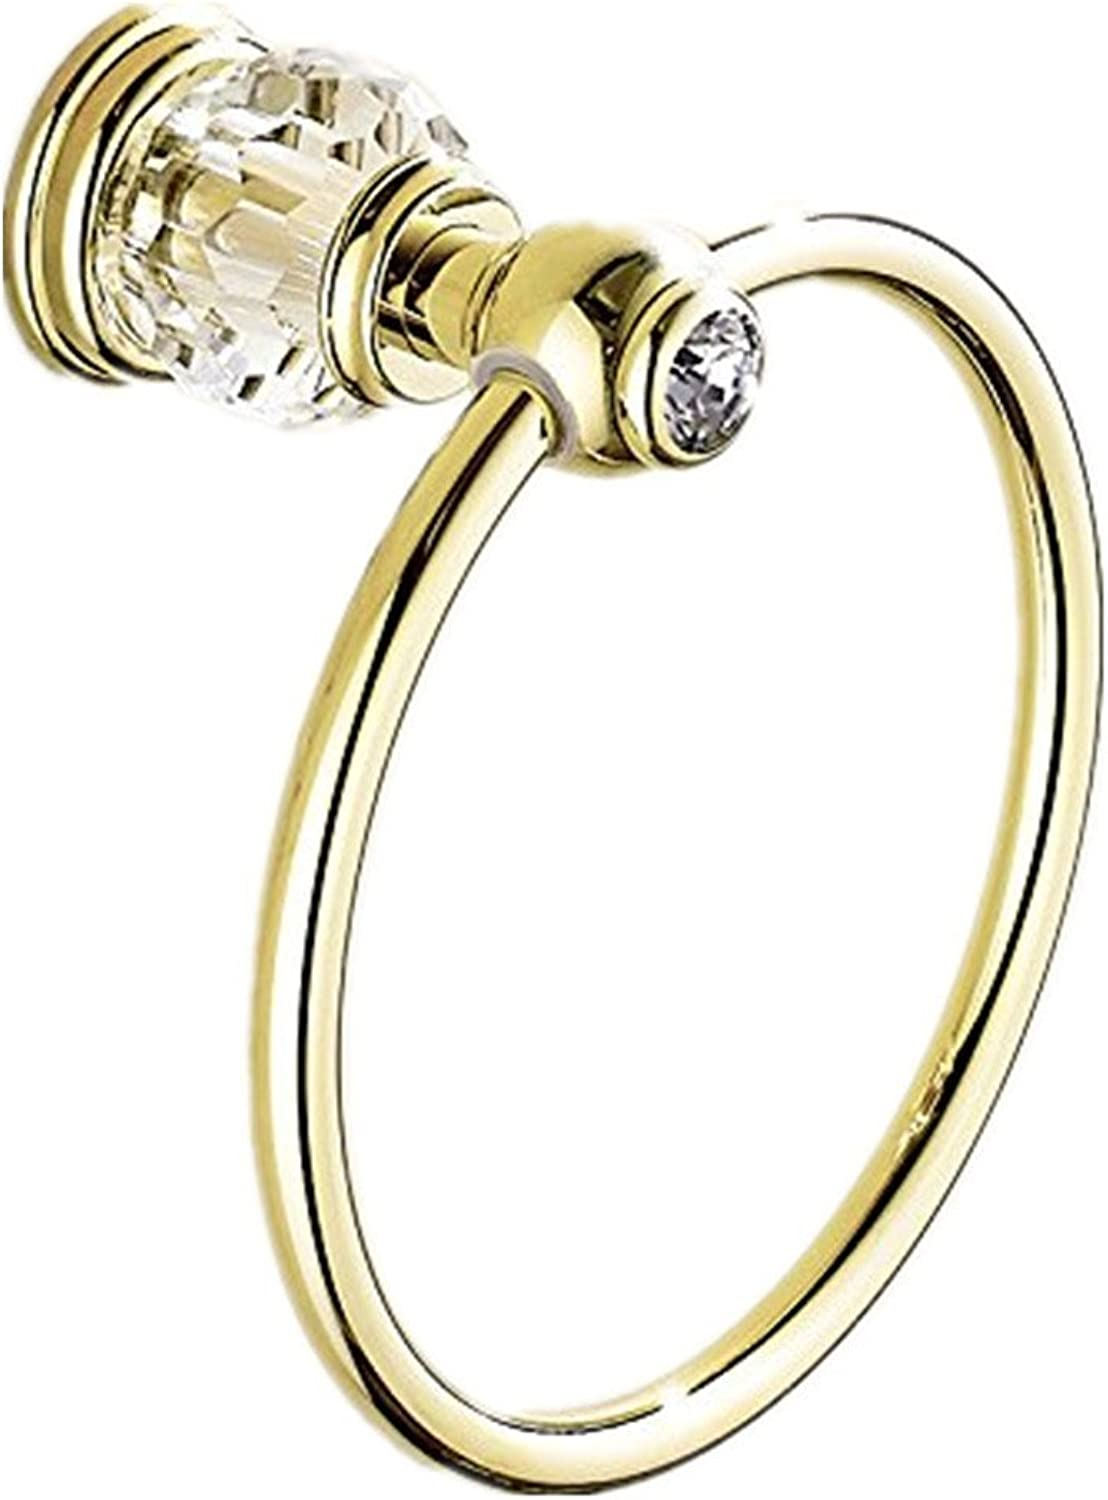 AUSWIND gold Polished Towel Rings, Antique Brass Wall Mounted with False Clear Crystal Decorate